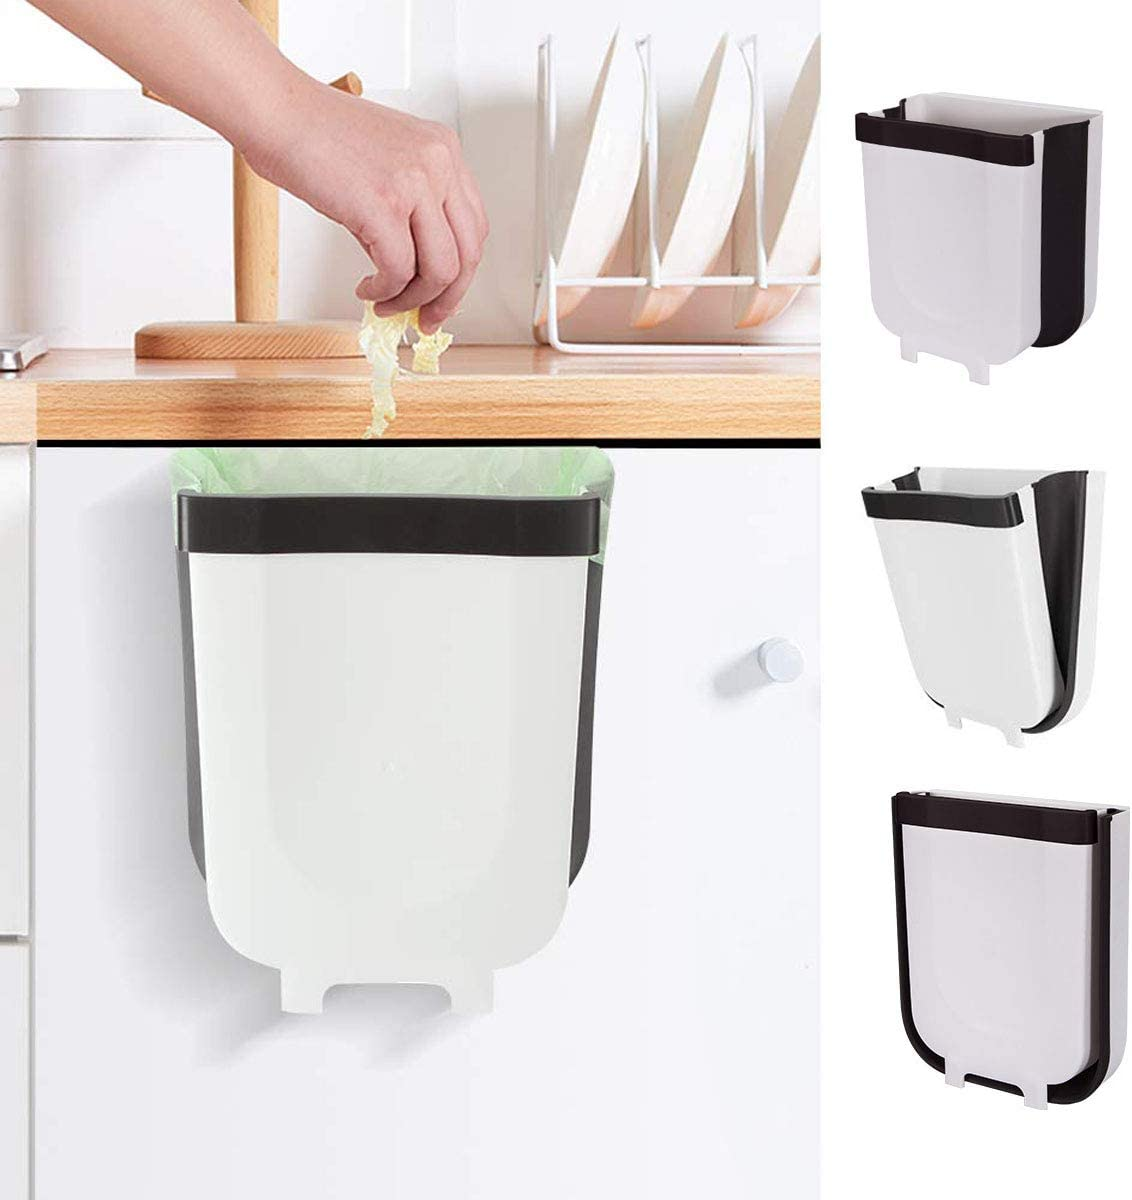 Kitchen Hanging Trash Can, Collapsible Trash Bin Small Compact Garbage Can Attached to Cabinet Door Kitchen Drawer Bedroom Dorm Room Car Waste Bin - 9L/2.3 Gallon (White)